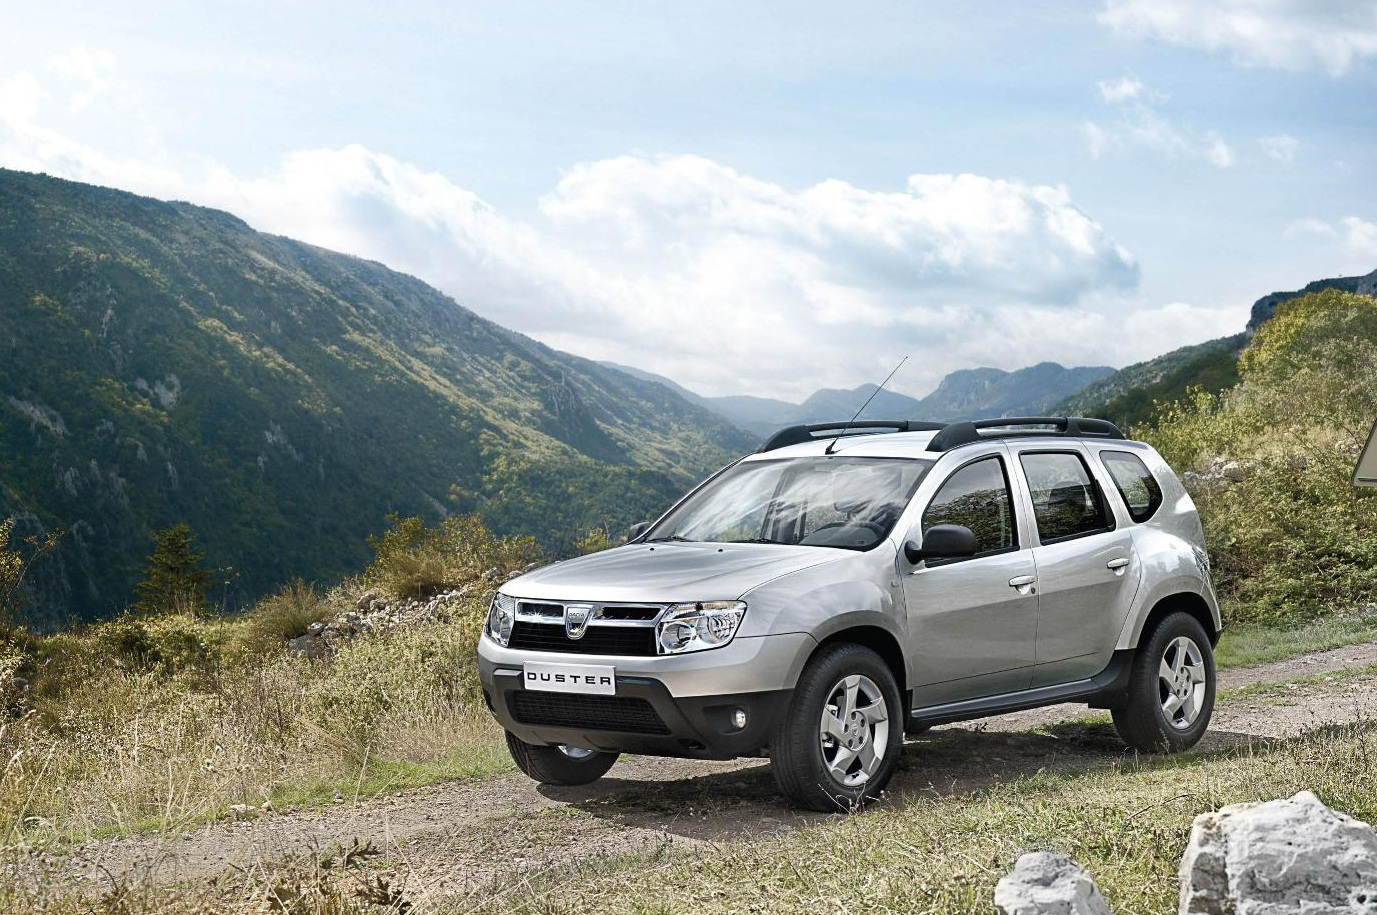 buy a dacia duster with a deposit of 100. Black Bedroom Furniture Sets. Home Design Ideas